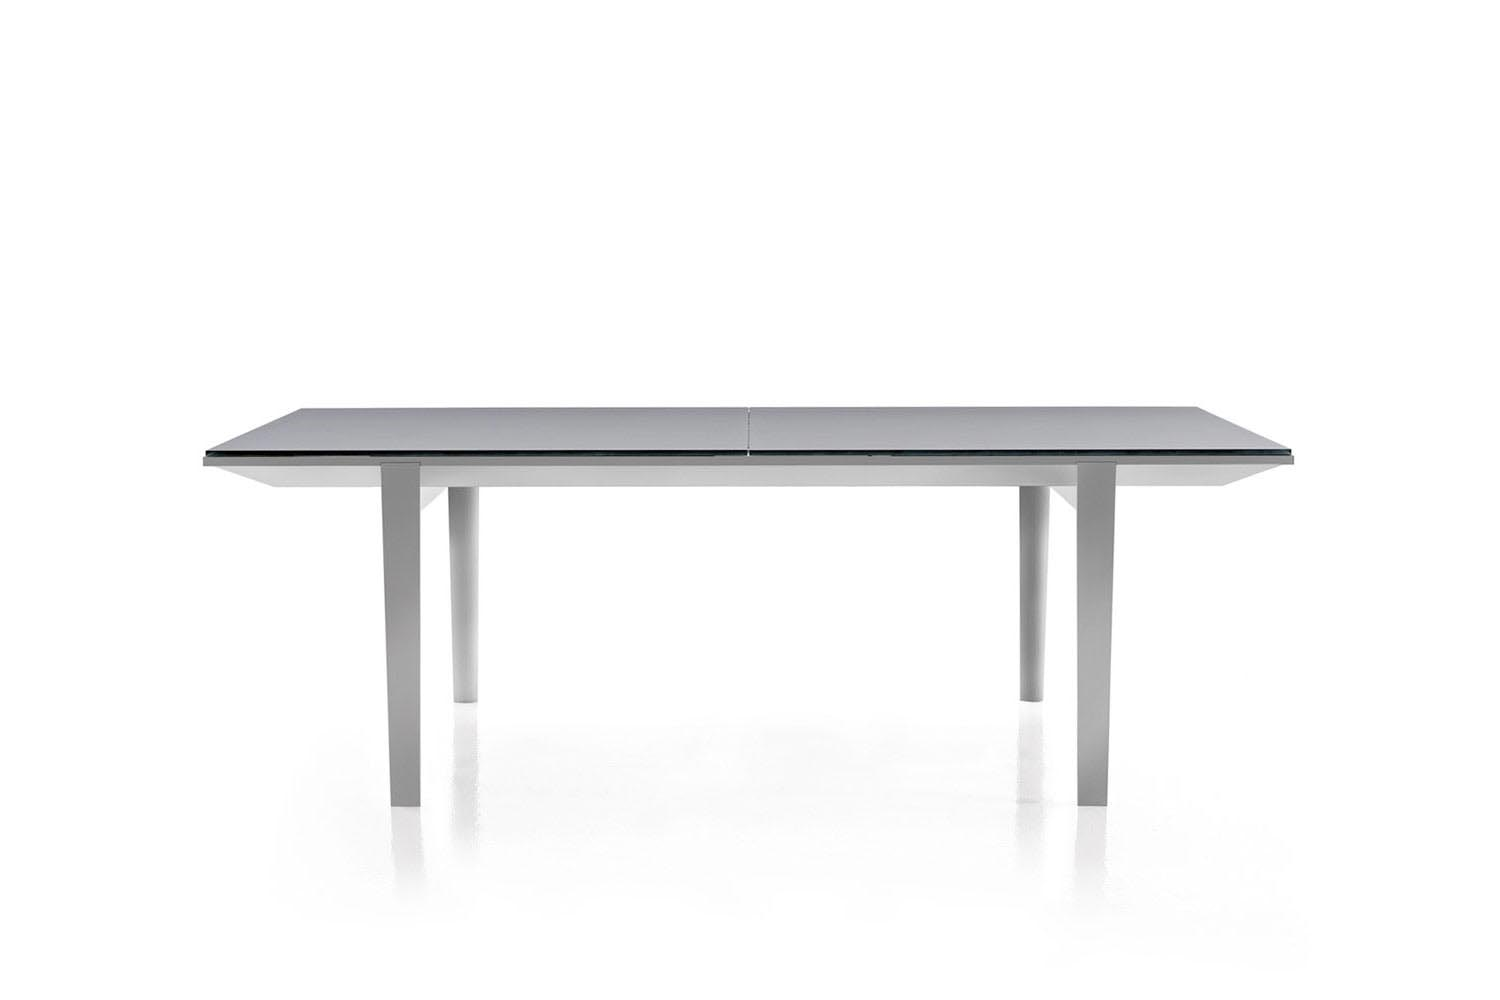 Hans Extension Table by Antonio Citterio for B&B Italia